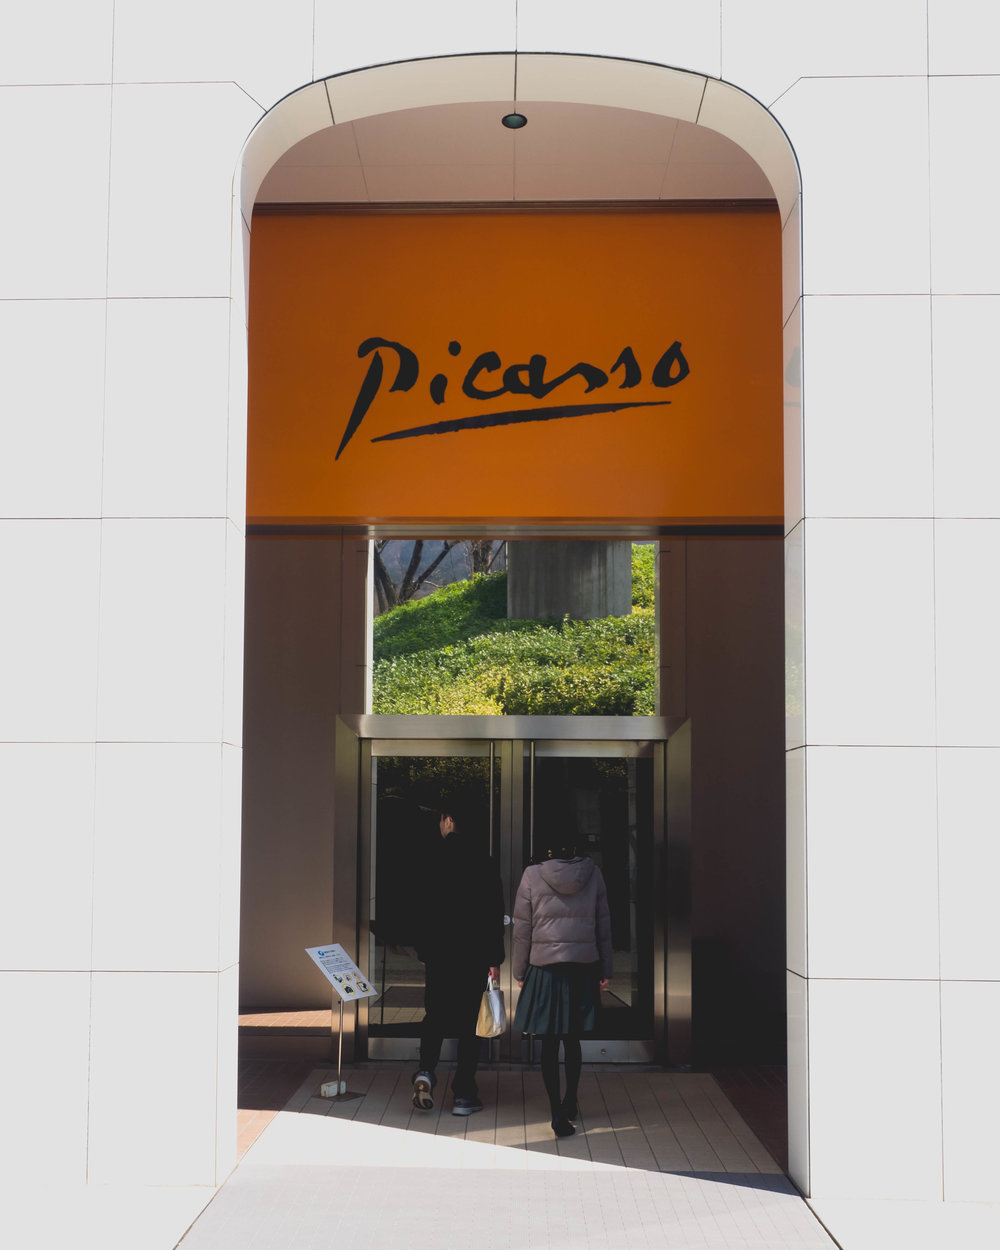 picasso pavillion entrance.